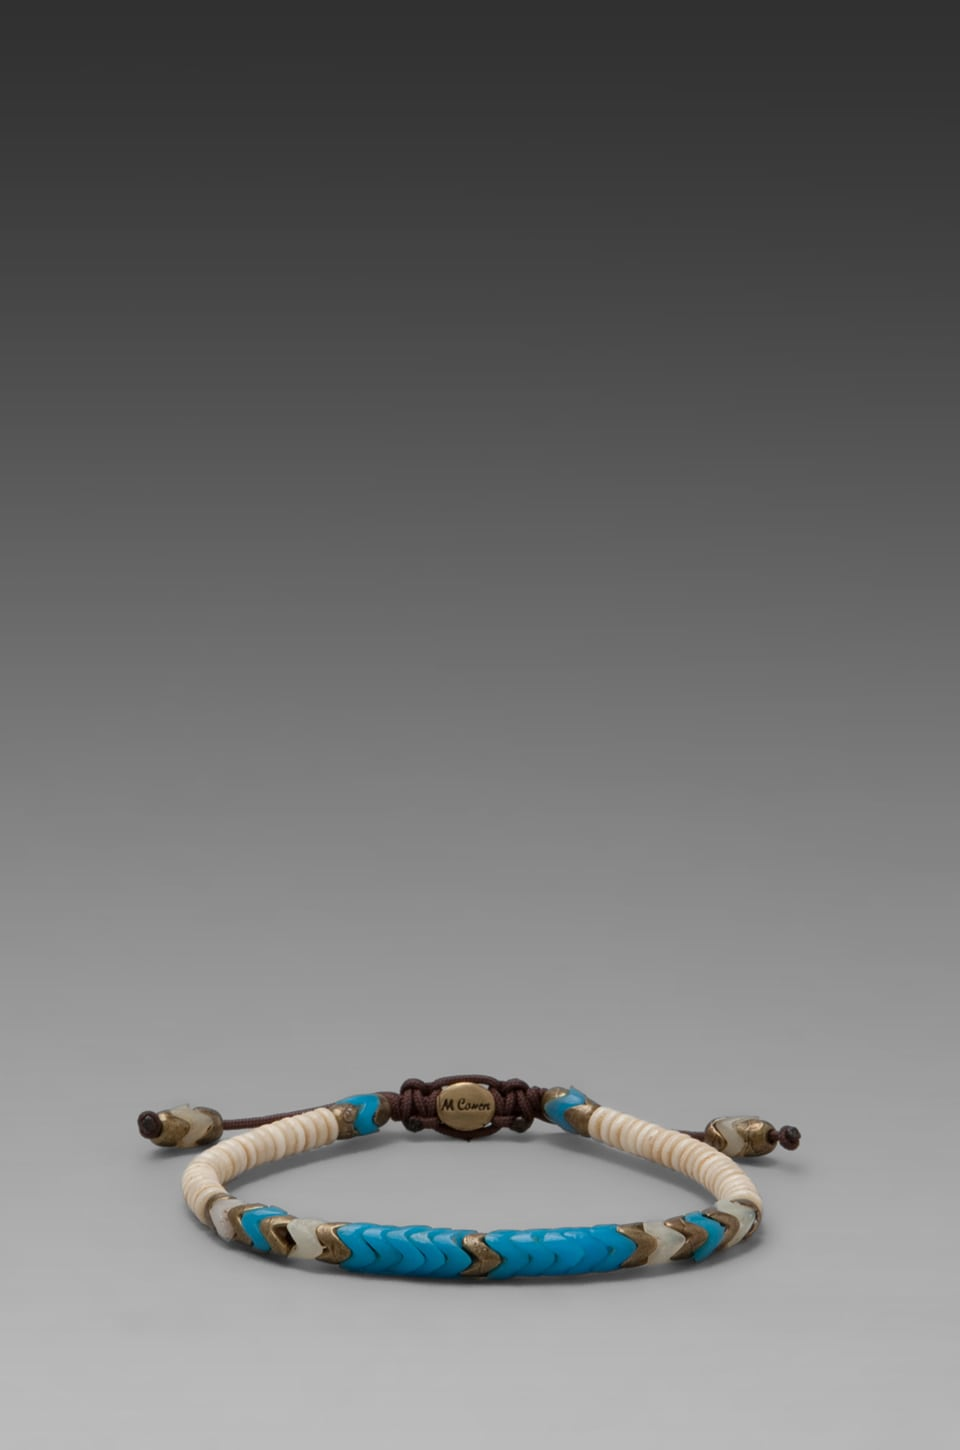 M.Cohen Tribal Style African Glass and Bone Bracelet in Turquoise